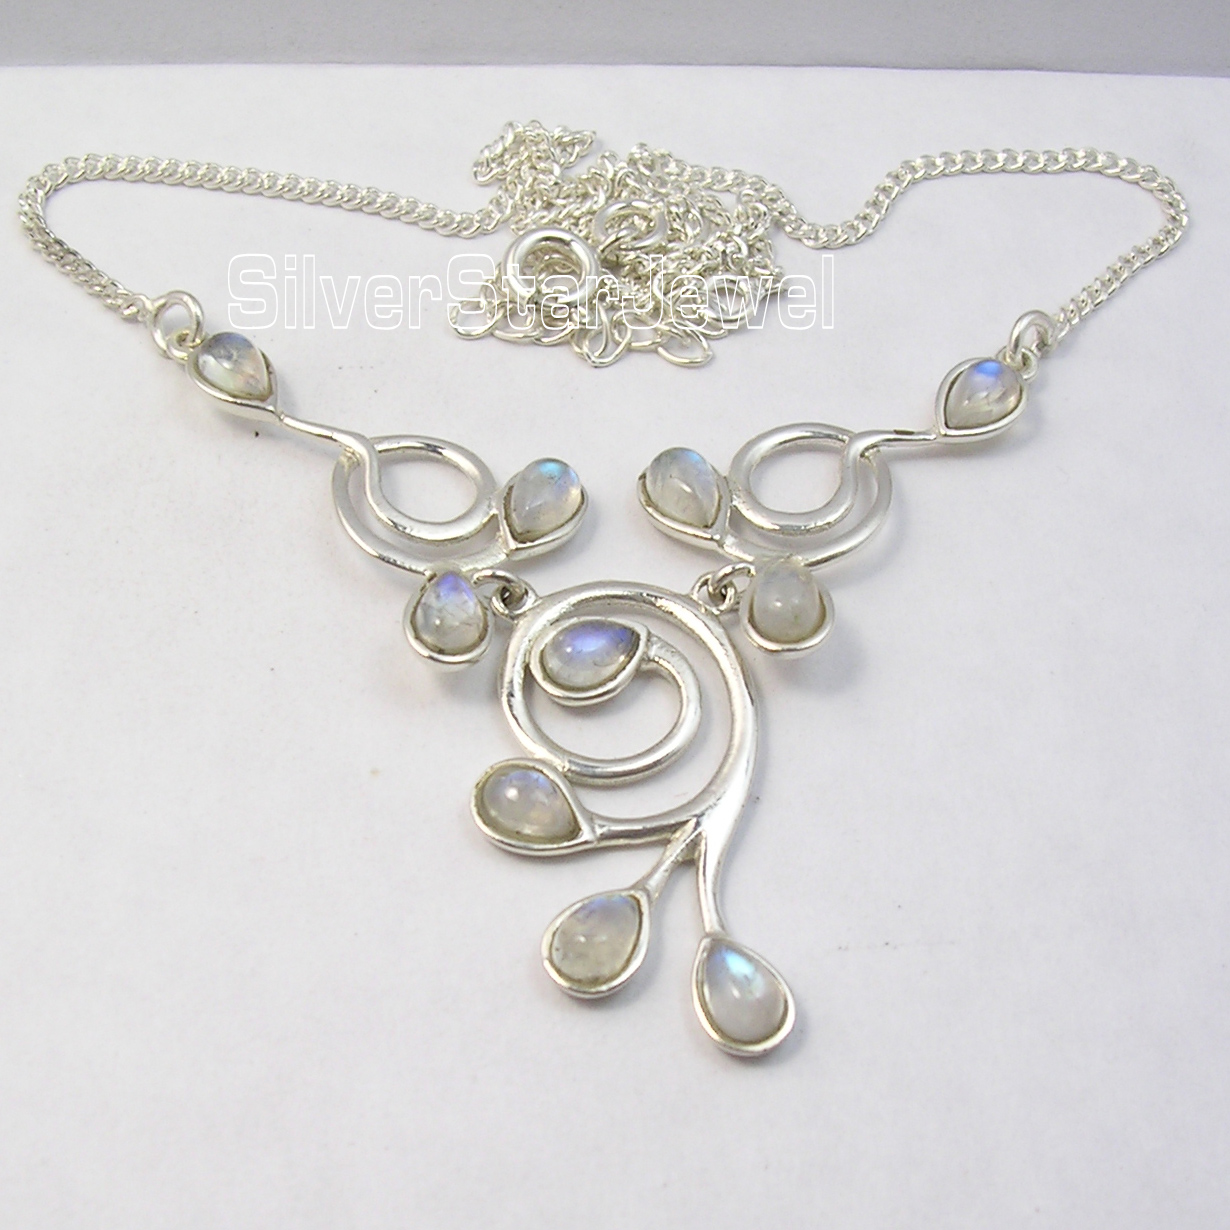 Chanti International Silver RAINBOW MOONSTONE GEMSET Necklace 16 3/4 Inches 9.6 Grams